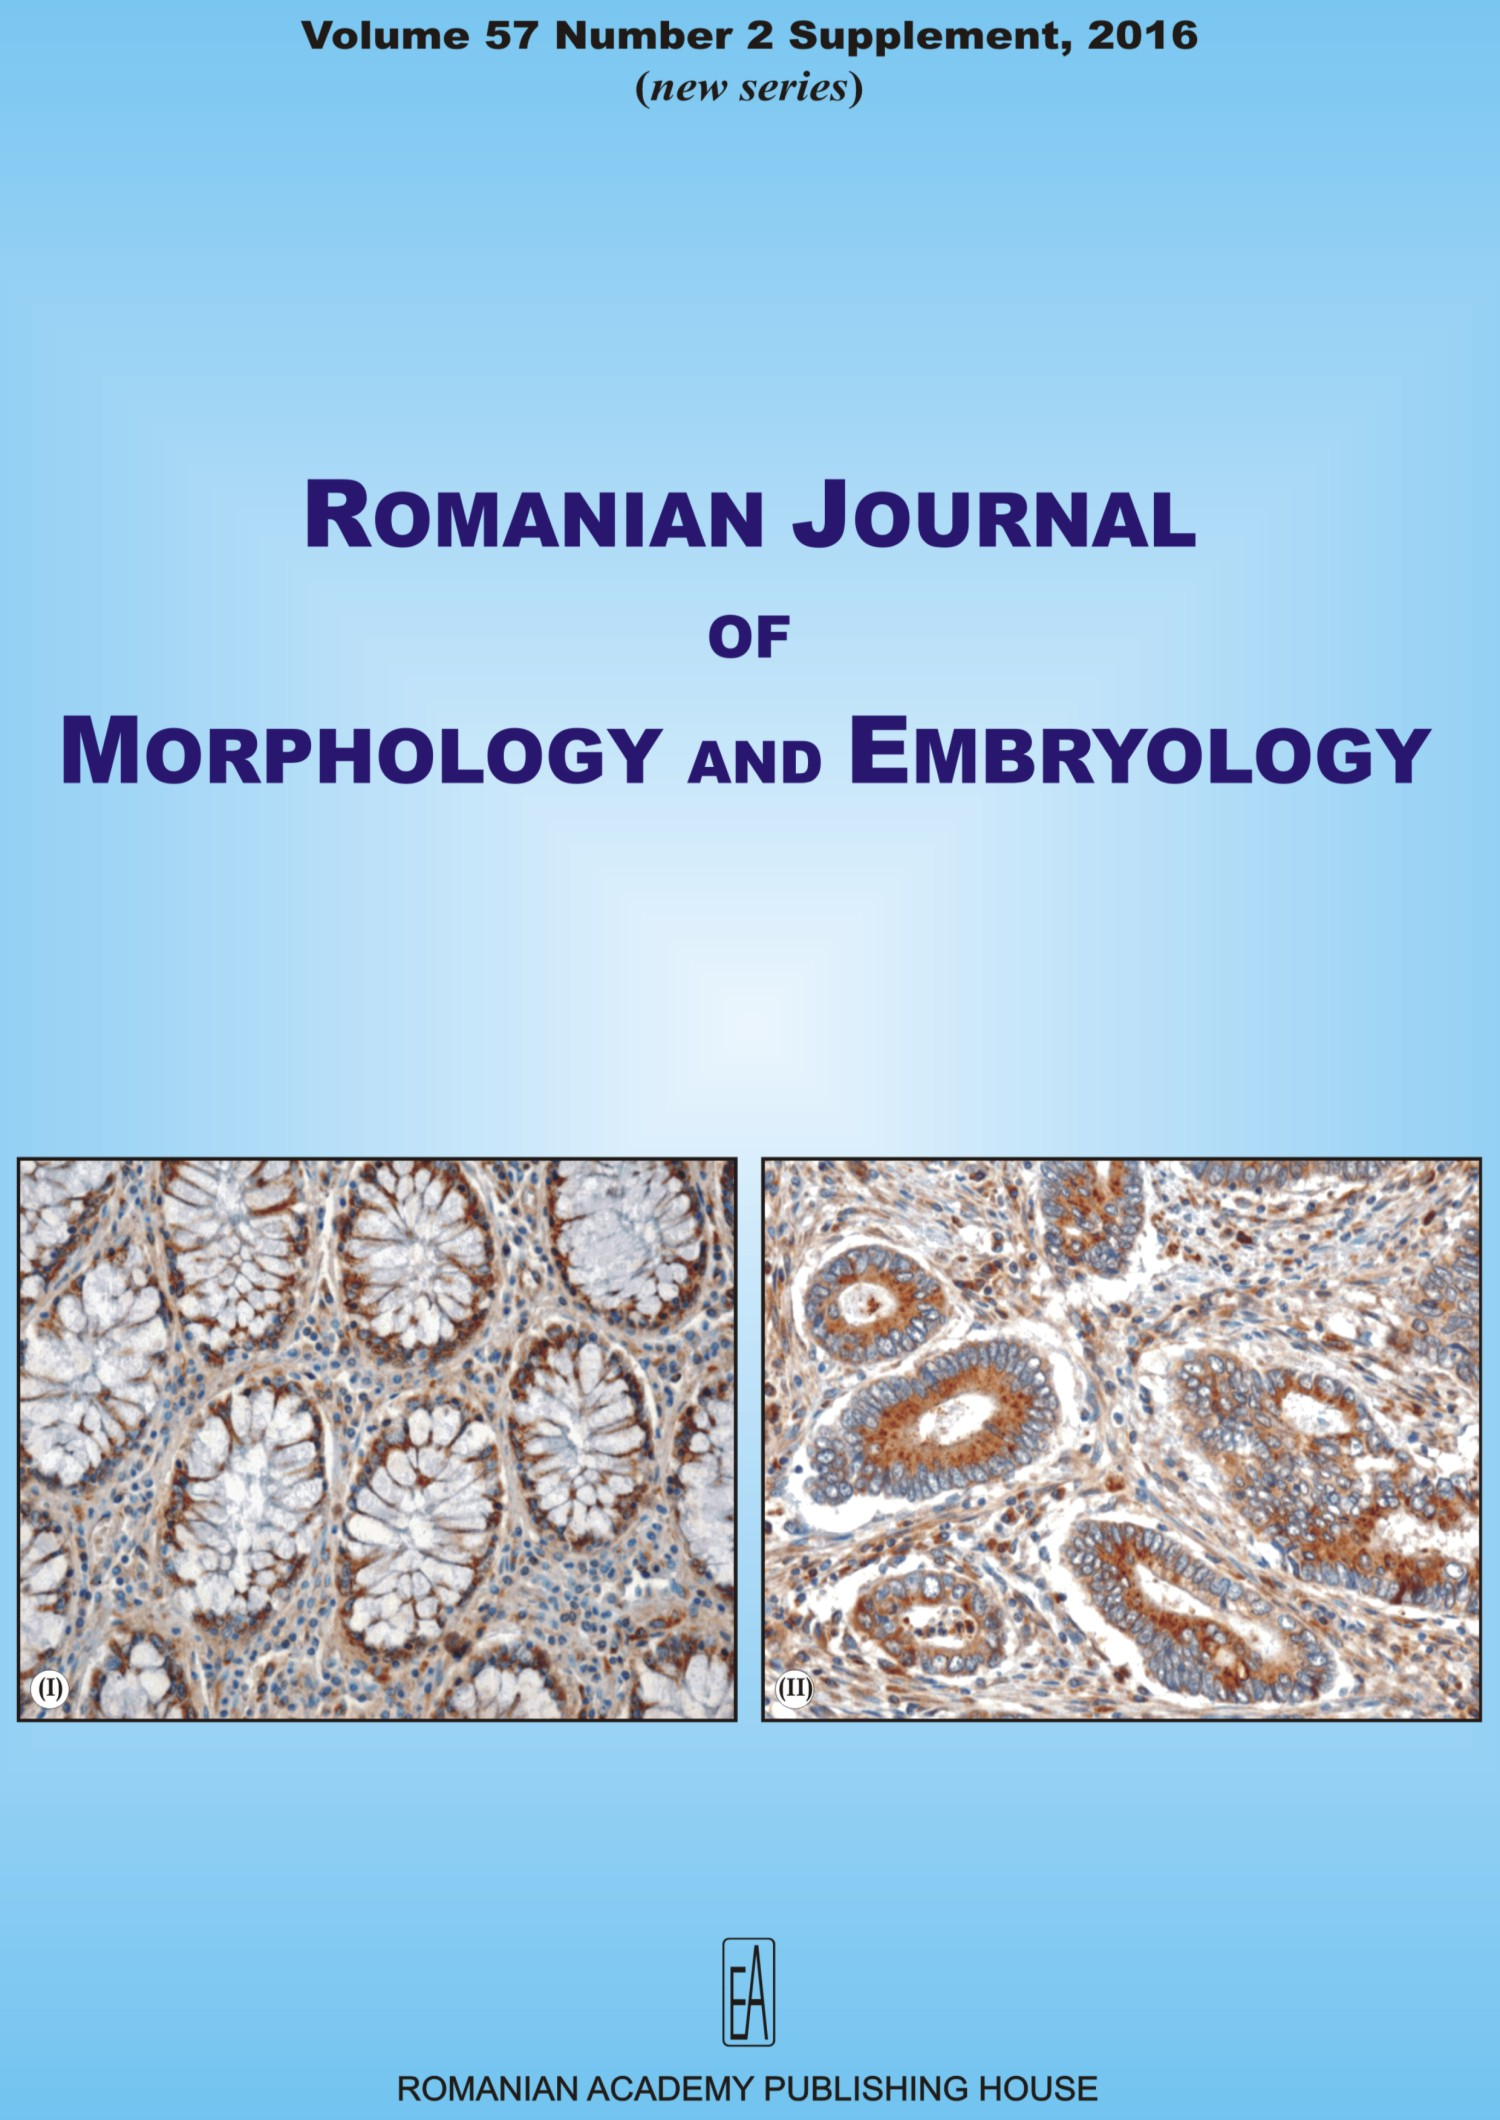 Romanian Journal of Morphology and Embryology, vol. 57 no. 2Suppl, 2016